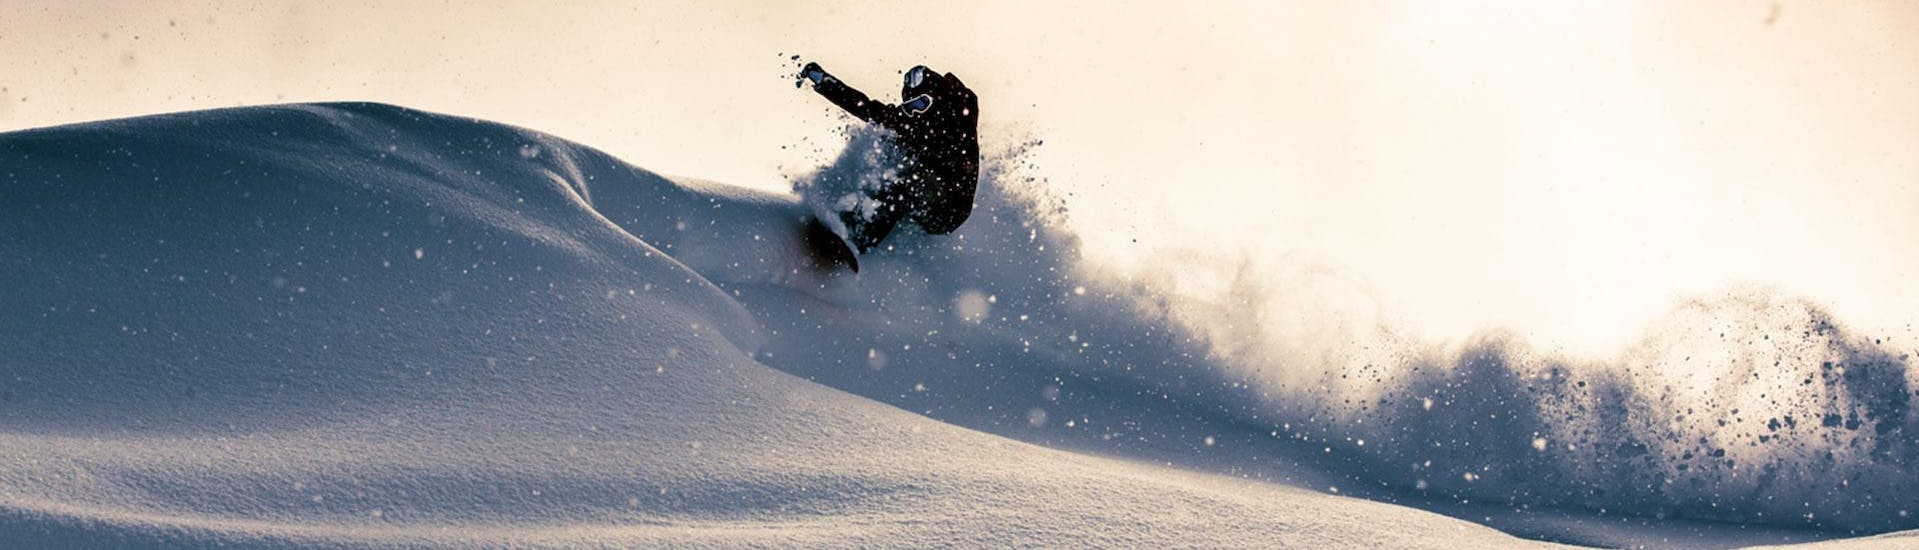 A snowboarder is riding through deep powder snow during his Private Off-Piste Snowboard Lessons - All Levels with BOARD.AT.